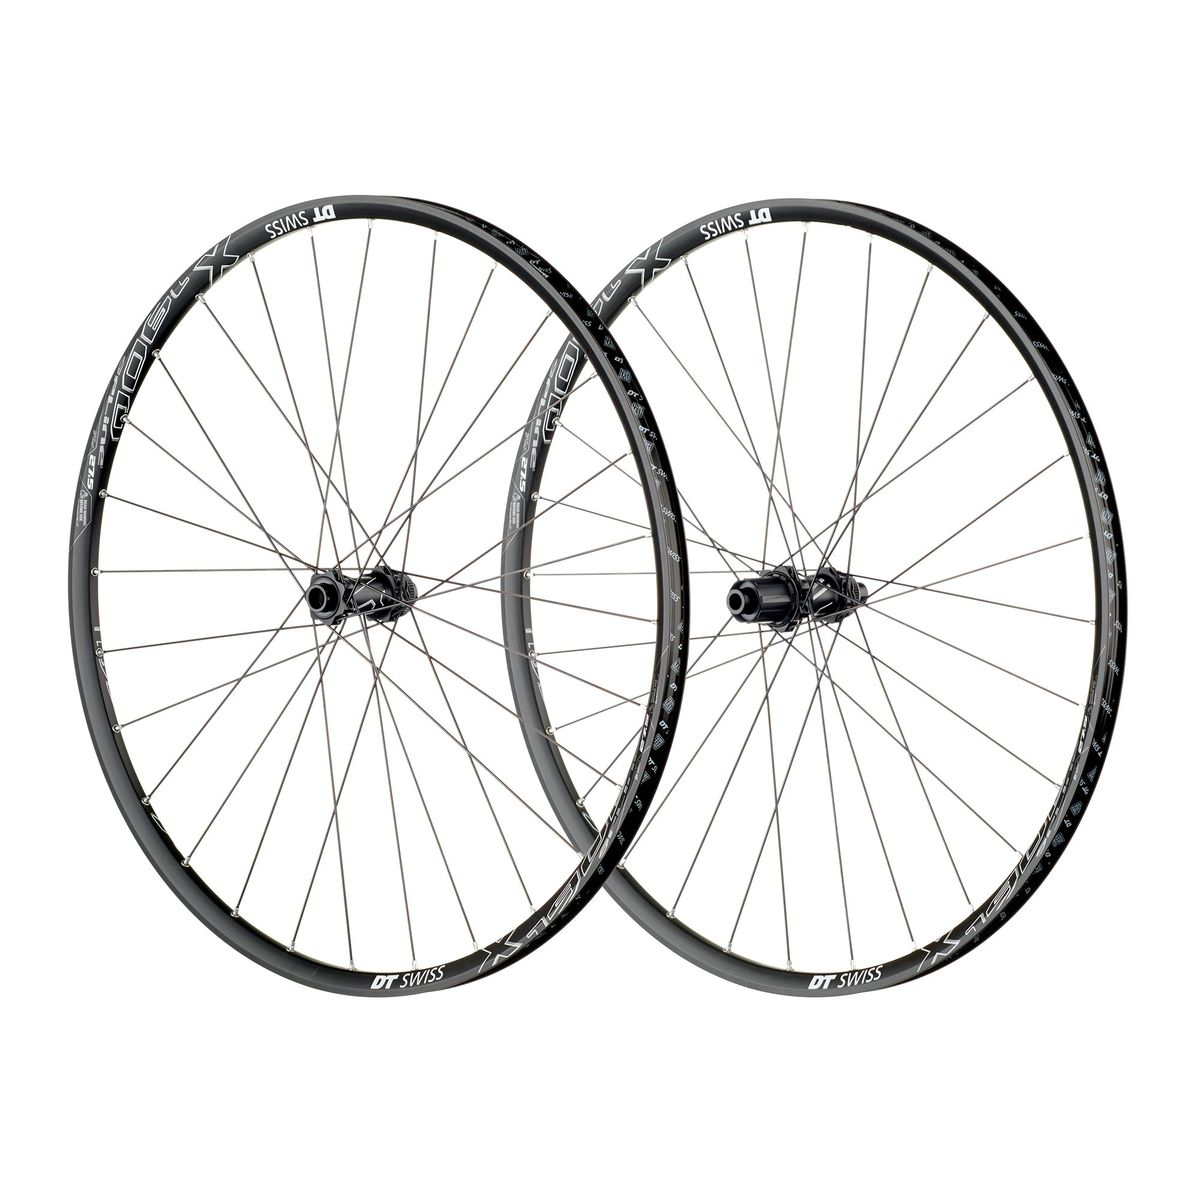 X 1900 Spline Disc MTB wheels 2016